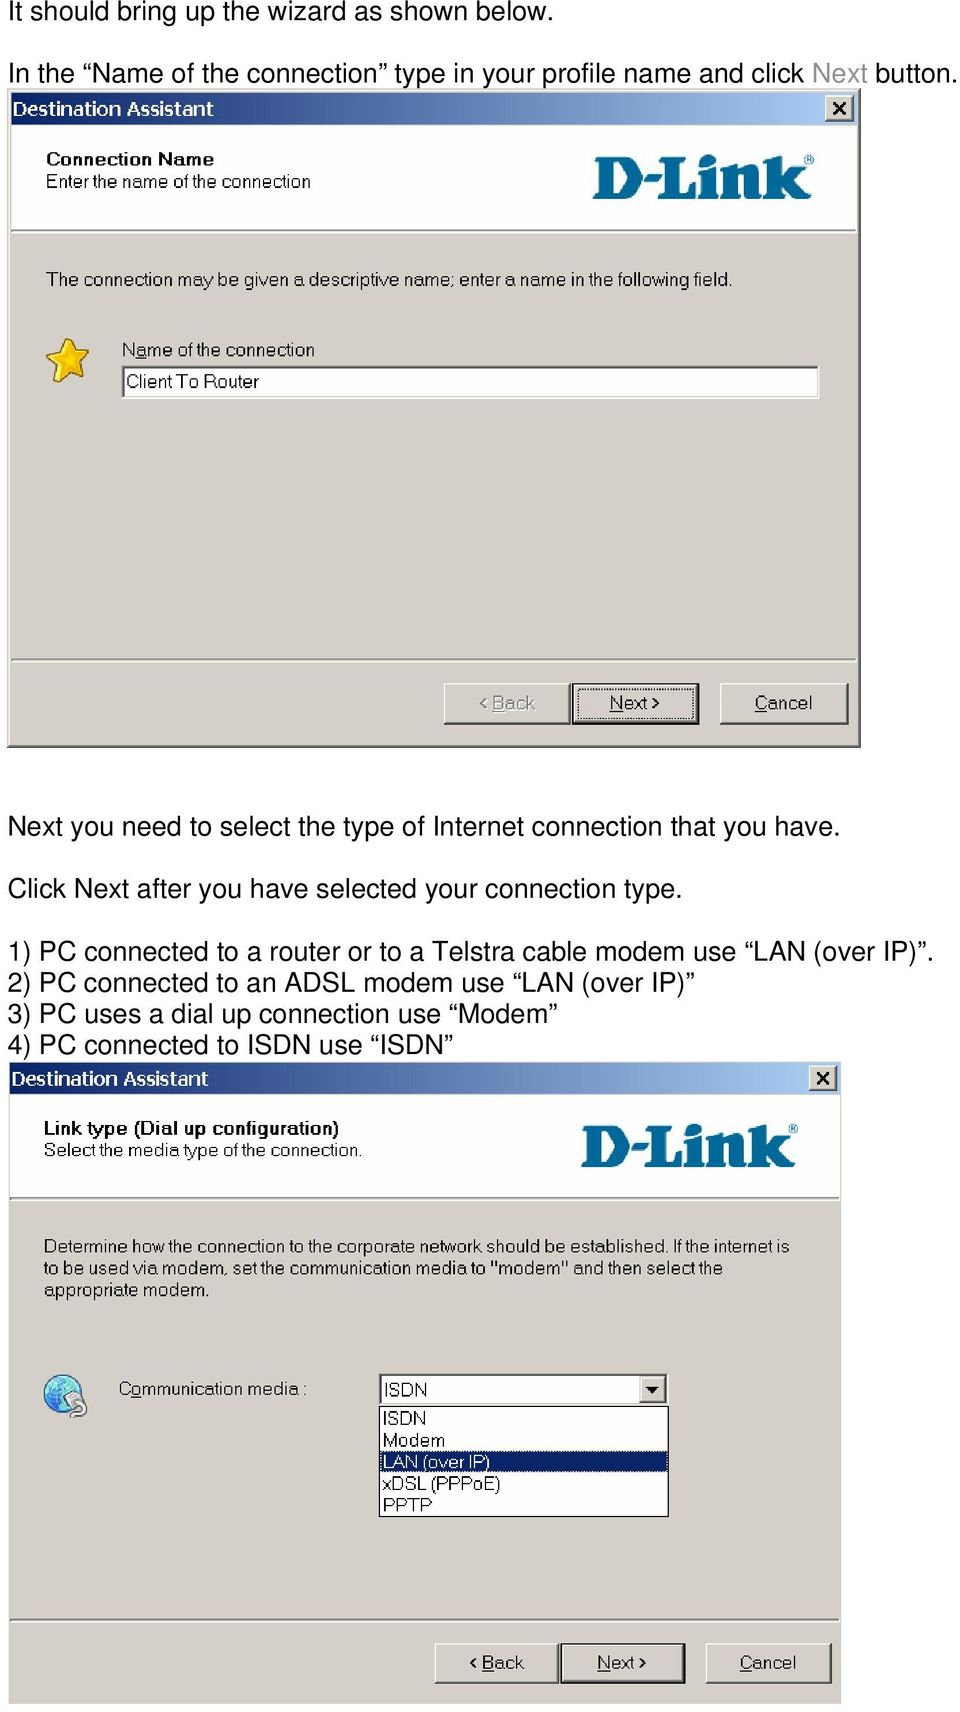 Next you need to select the type of Internet connection that you have.